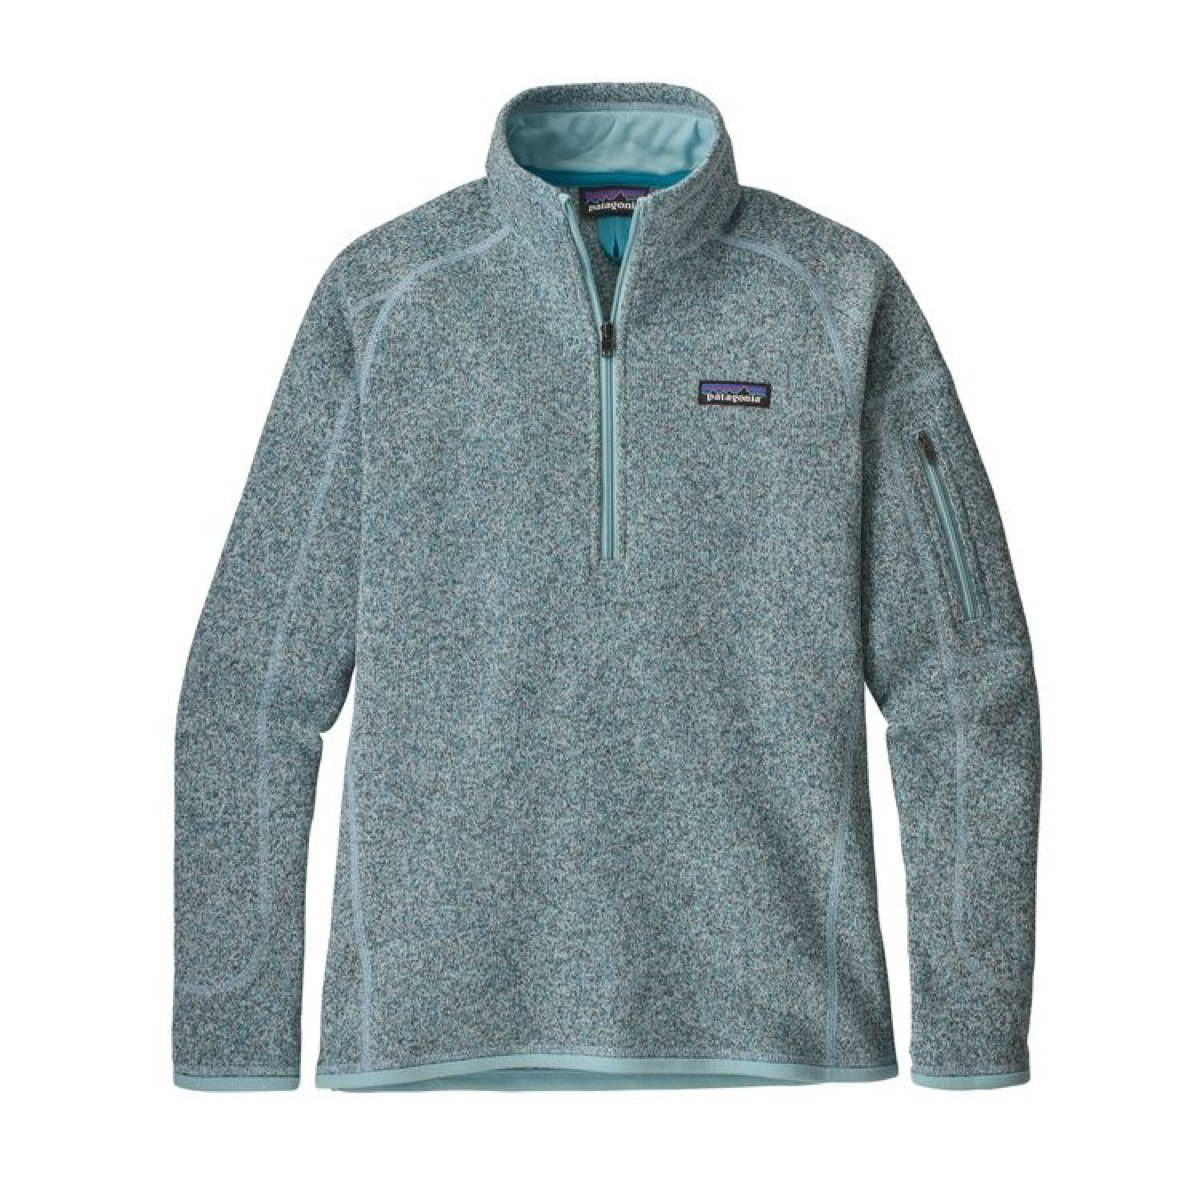 womens better sweater 1/4 zip fleece from patagonia, gifts for girlfriend